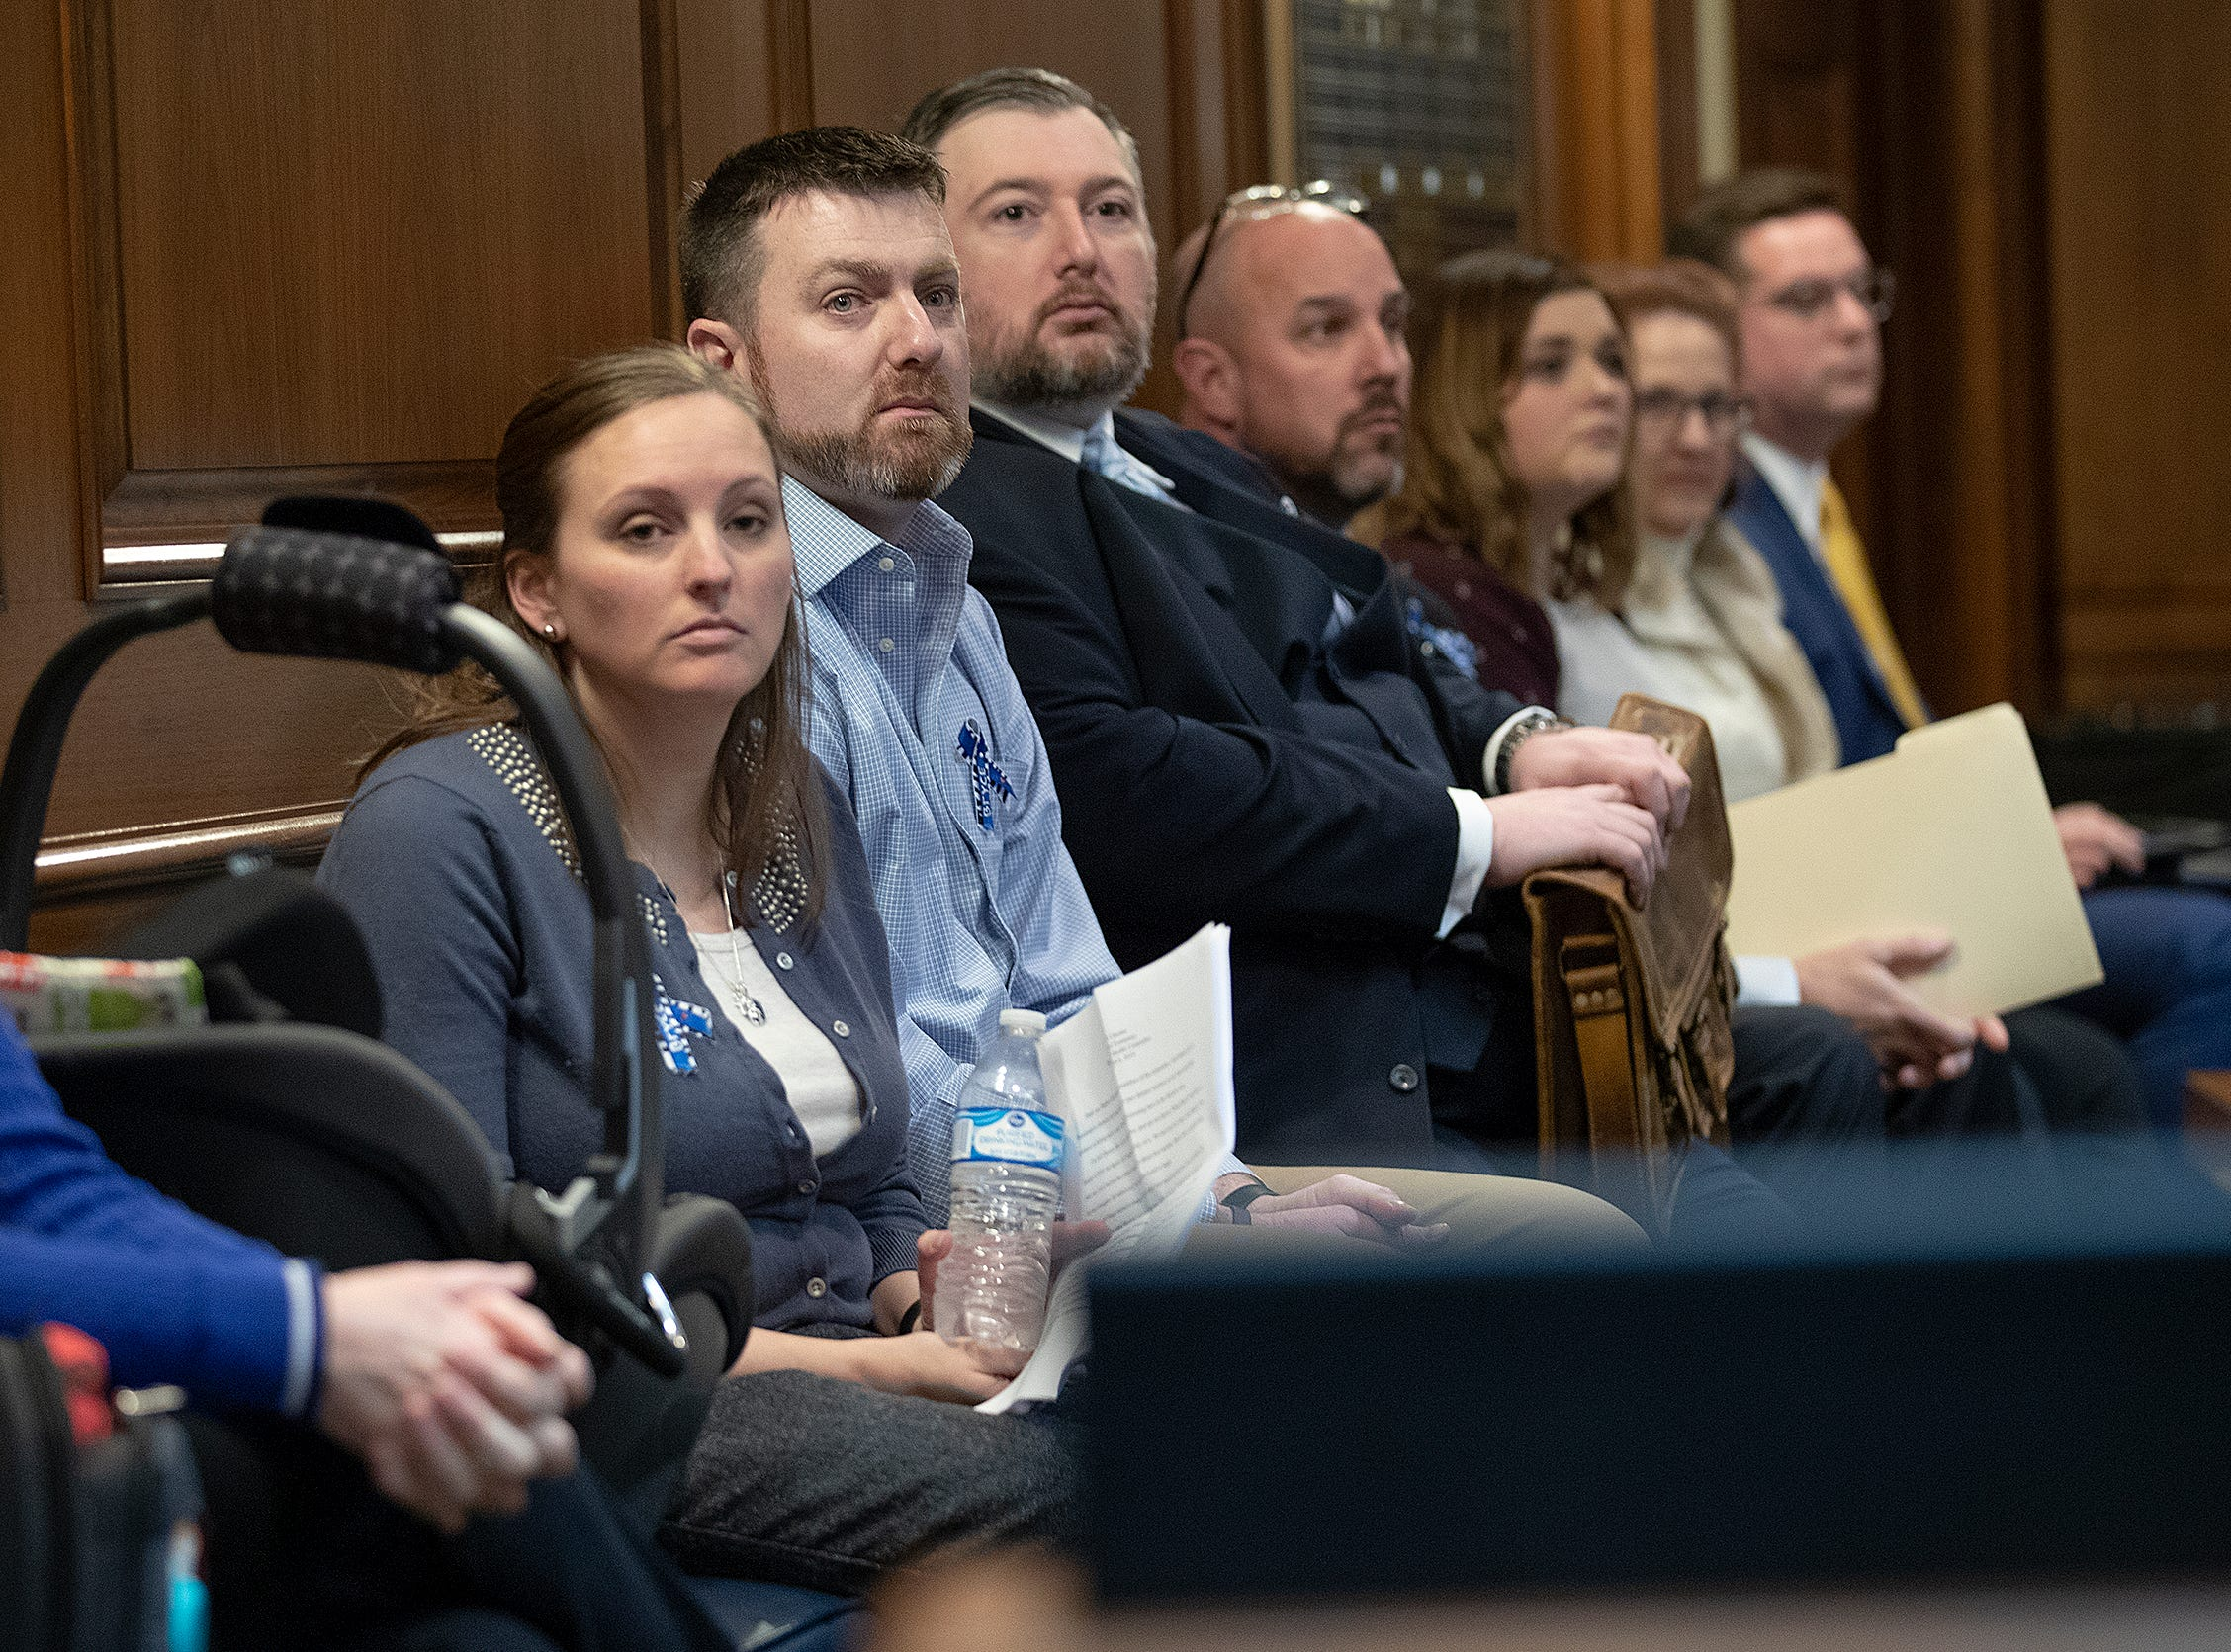 Parents Joel and Andrea Clausen at the Indiana State house to testify in front of law makers fight for a new law to add Krabbe disease to the list of disorders on the state's newborn screening panel. Their son Bryce was diagnosed with Krabbe disease after they notice many changes in their toddler.